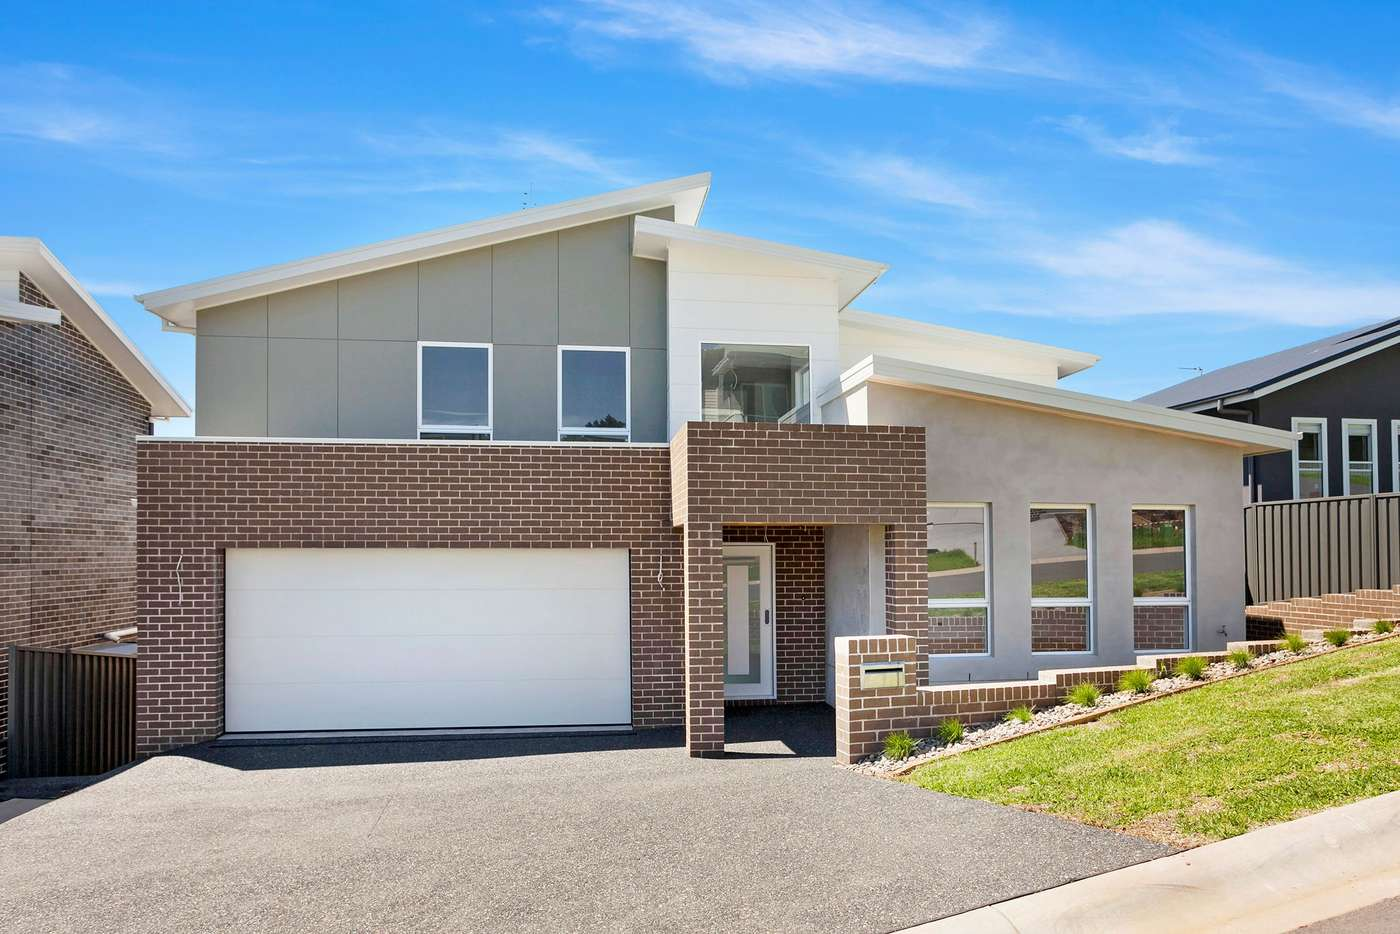 Main view of Homely house listing, 10 National Avenue, Shell Cove NSW 2529